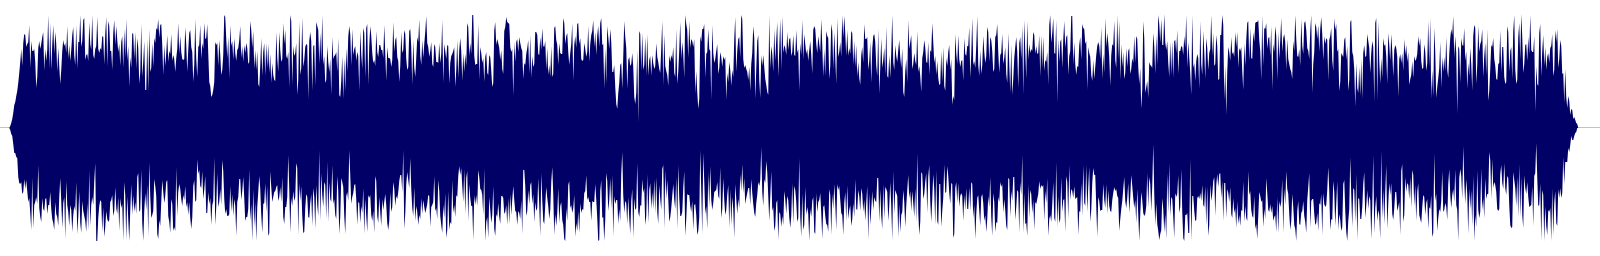 waveform of track #144189